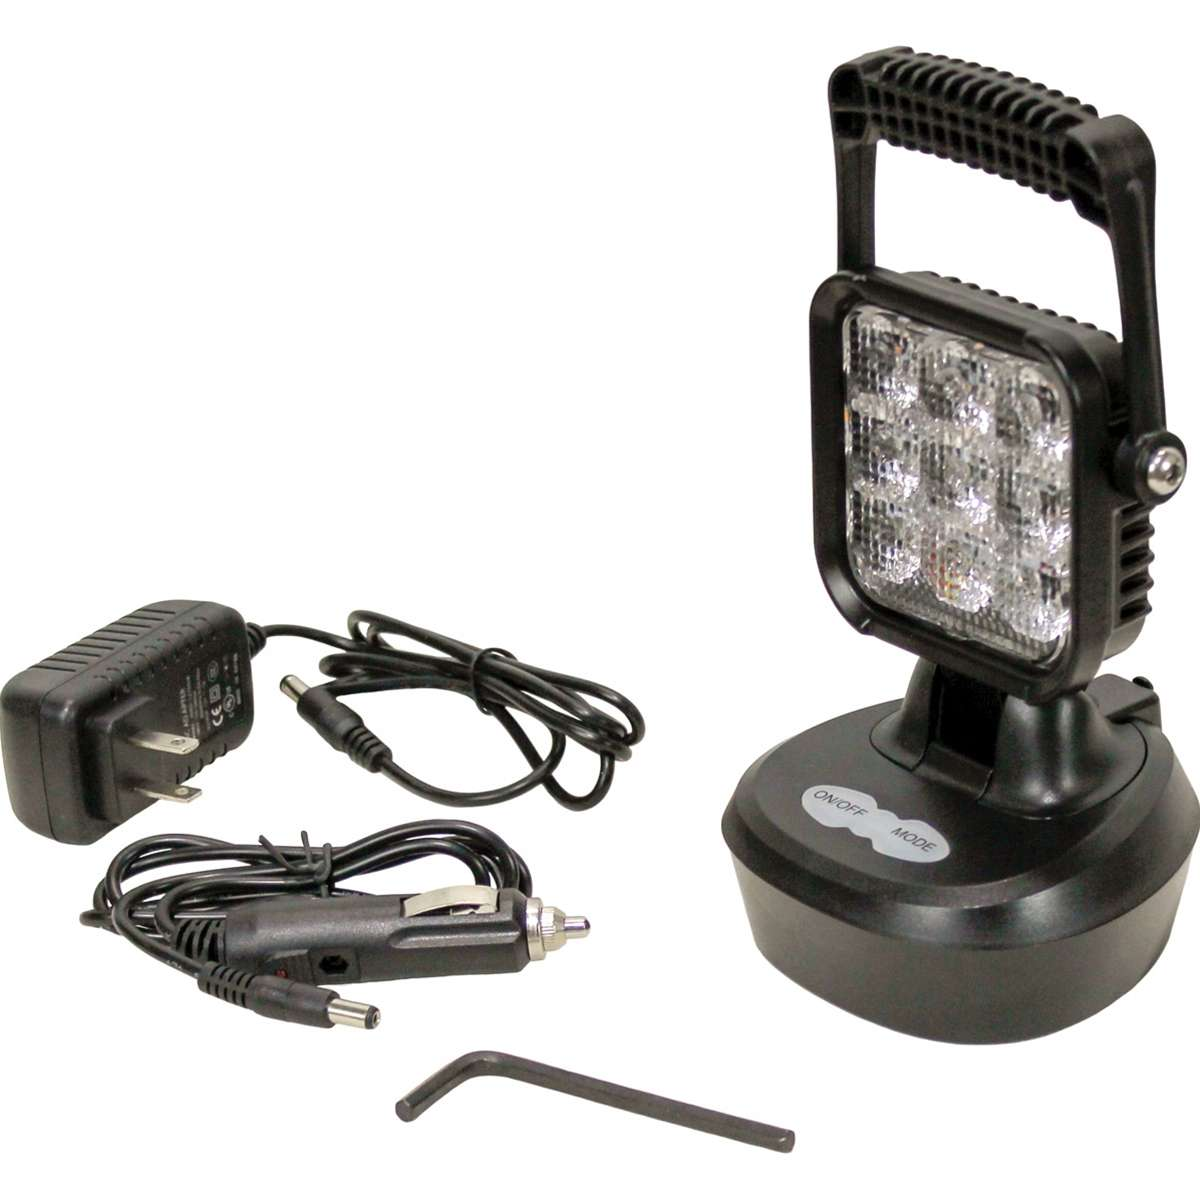 KM LED Rechargeable Flashing Amber Work Light